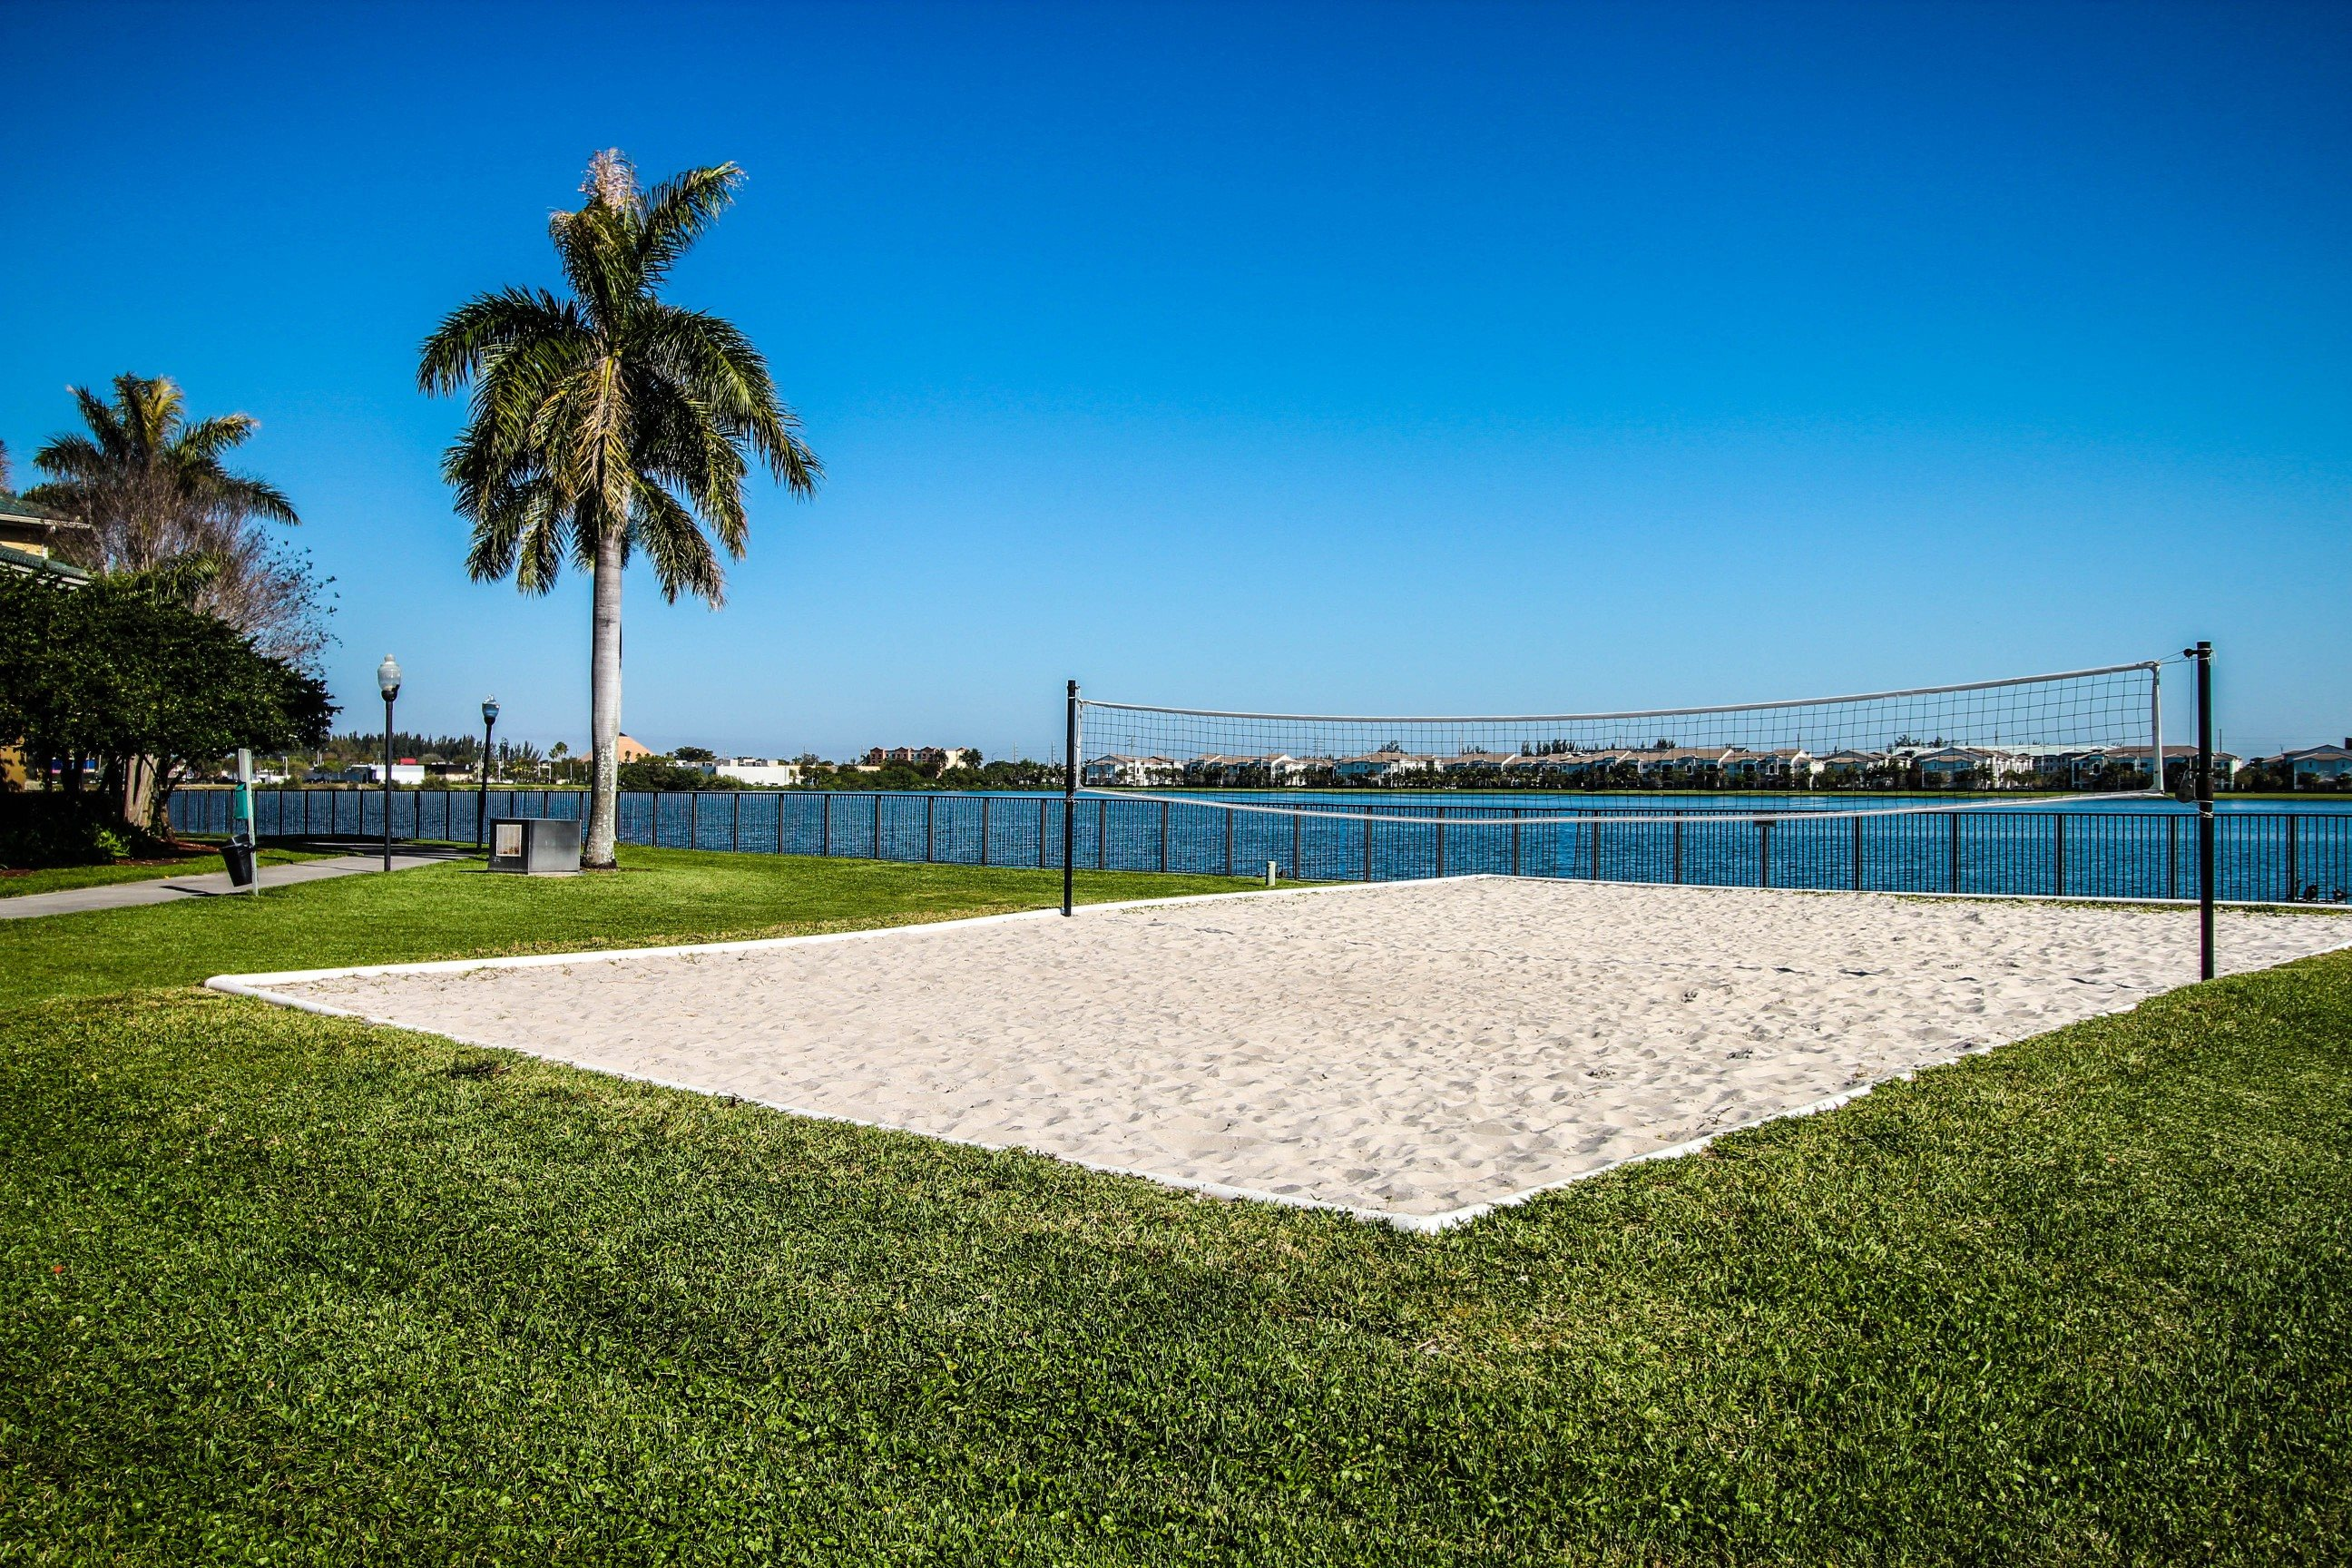 Palm Trees Landing|Sand Volleyball Courts